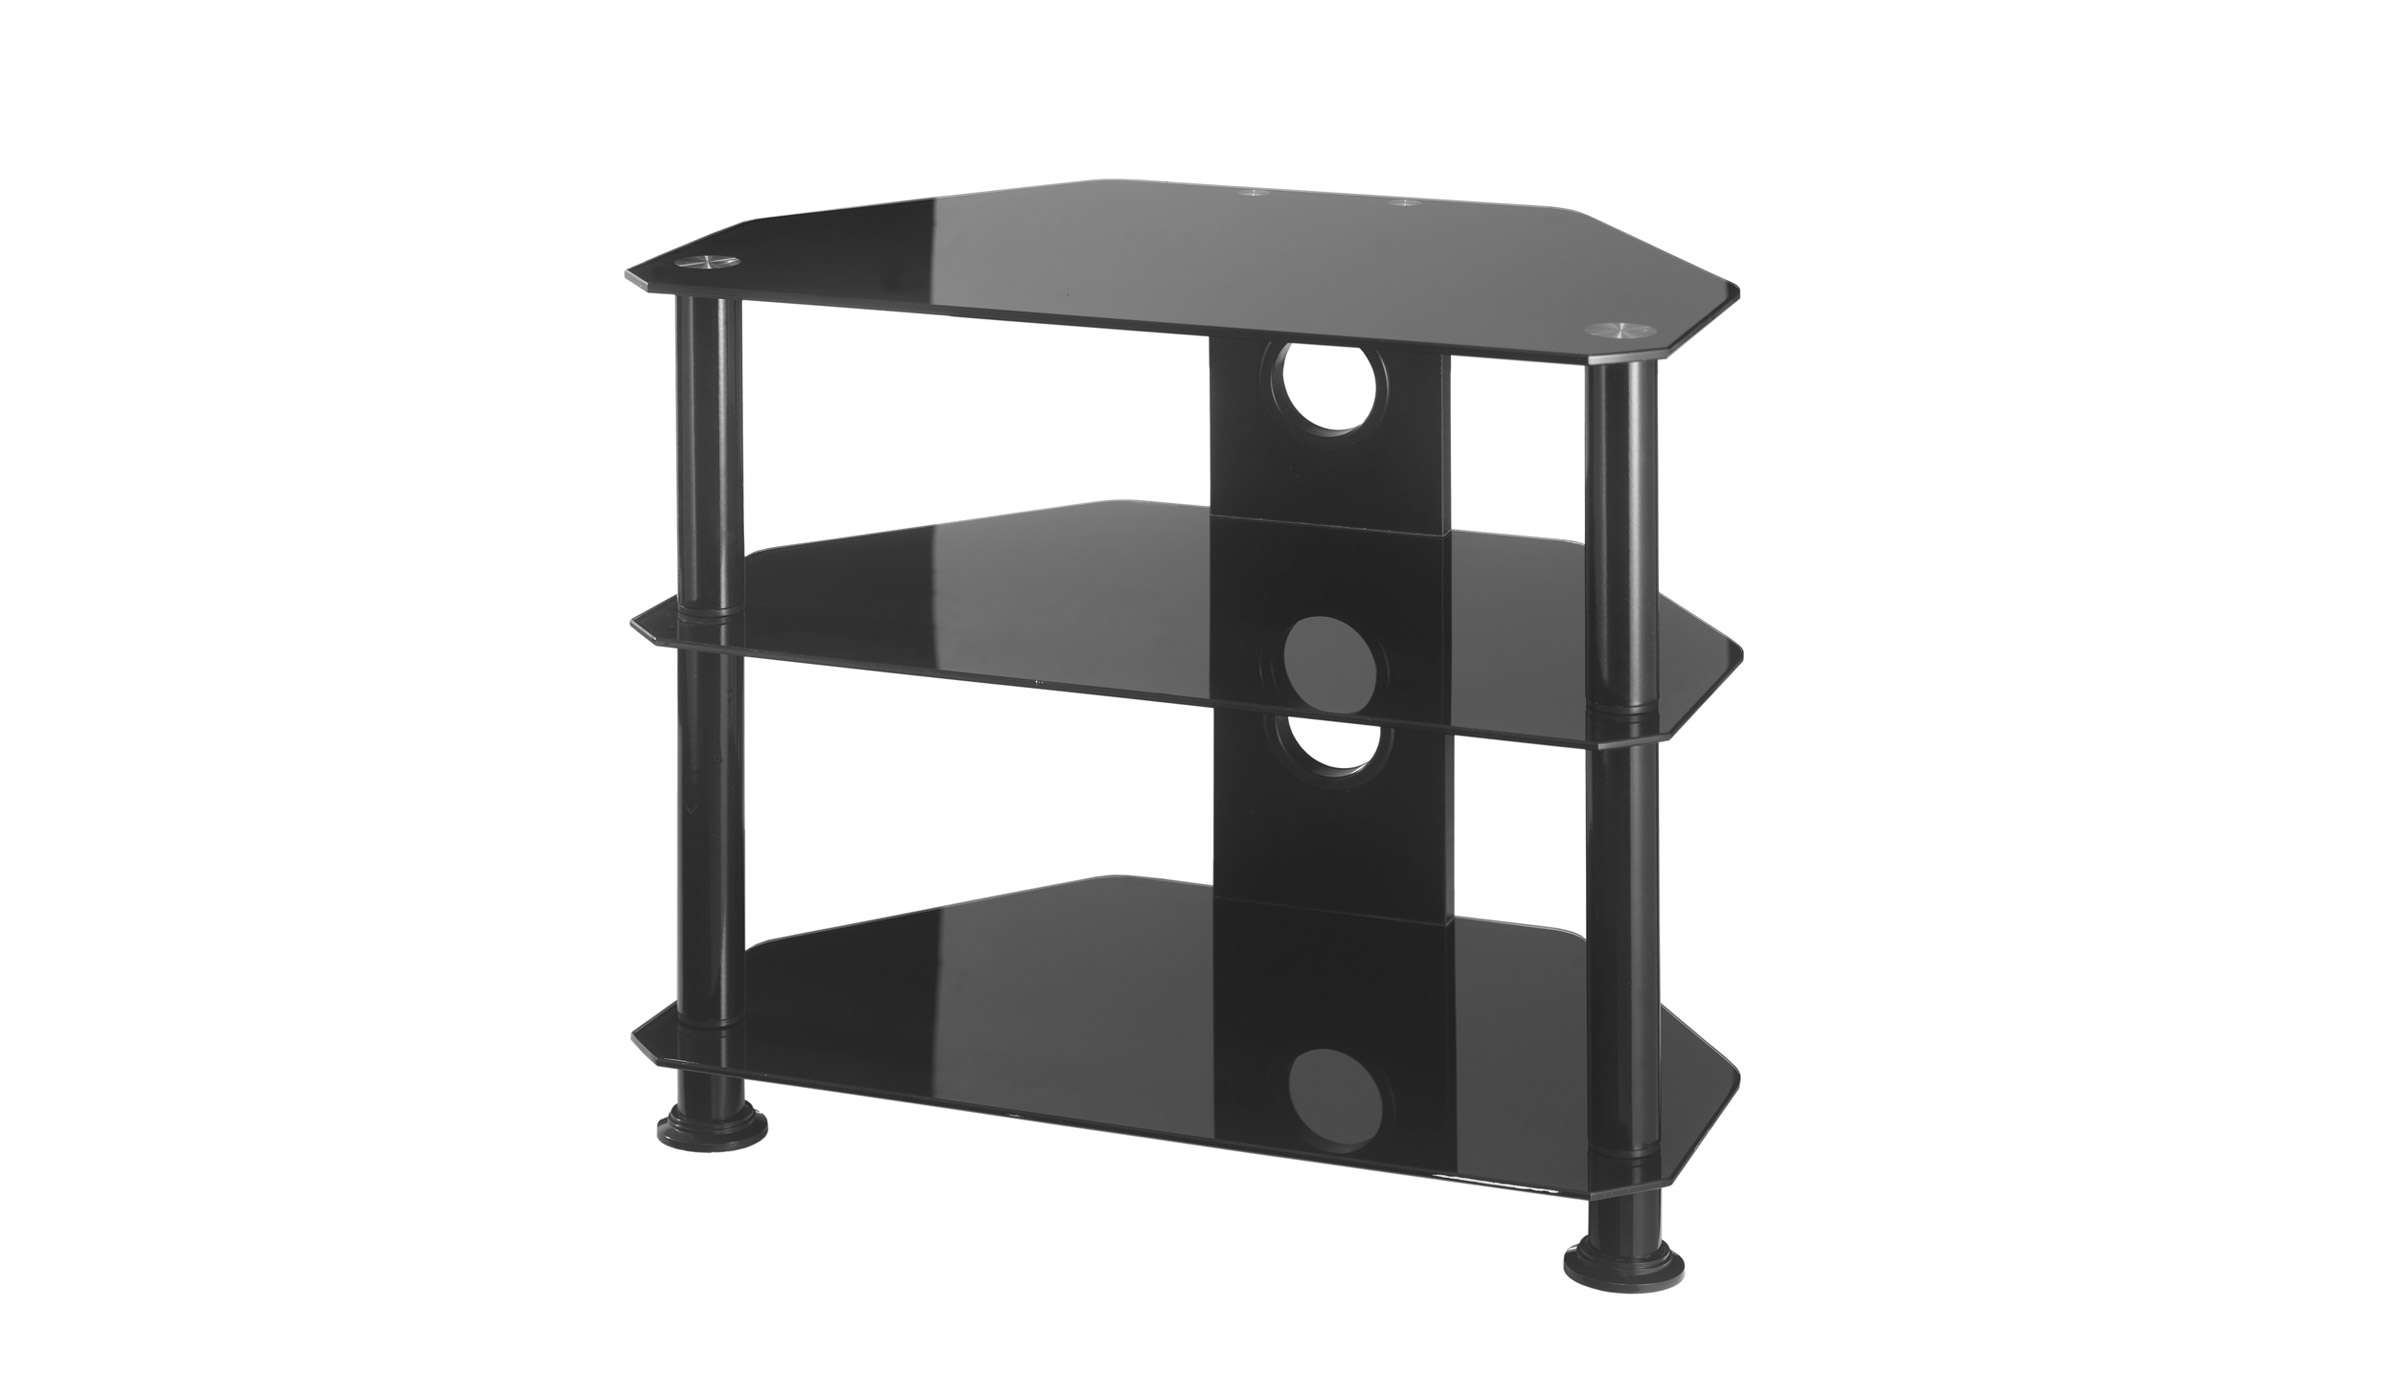 Small Glass Corner Tv Stand Up To 26 Inch Tv | Mmt Db600 Intended For Small Black Tv Cabinets (View 14 of 20)